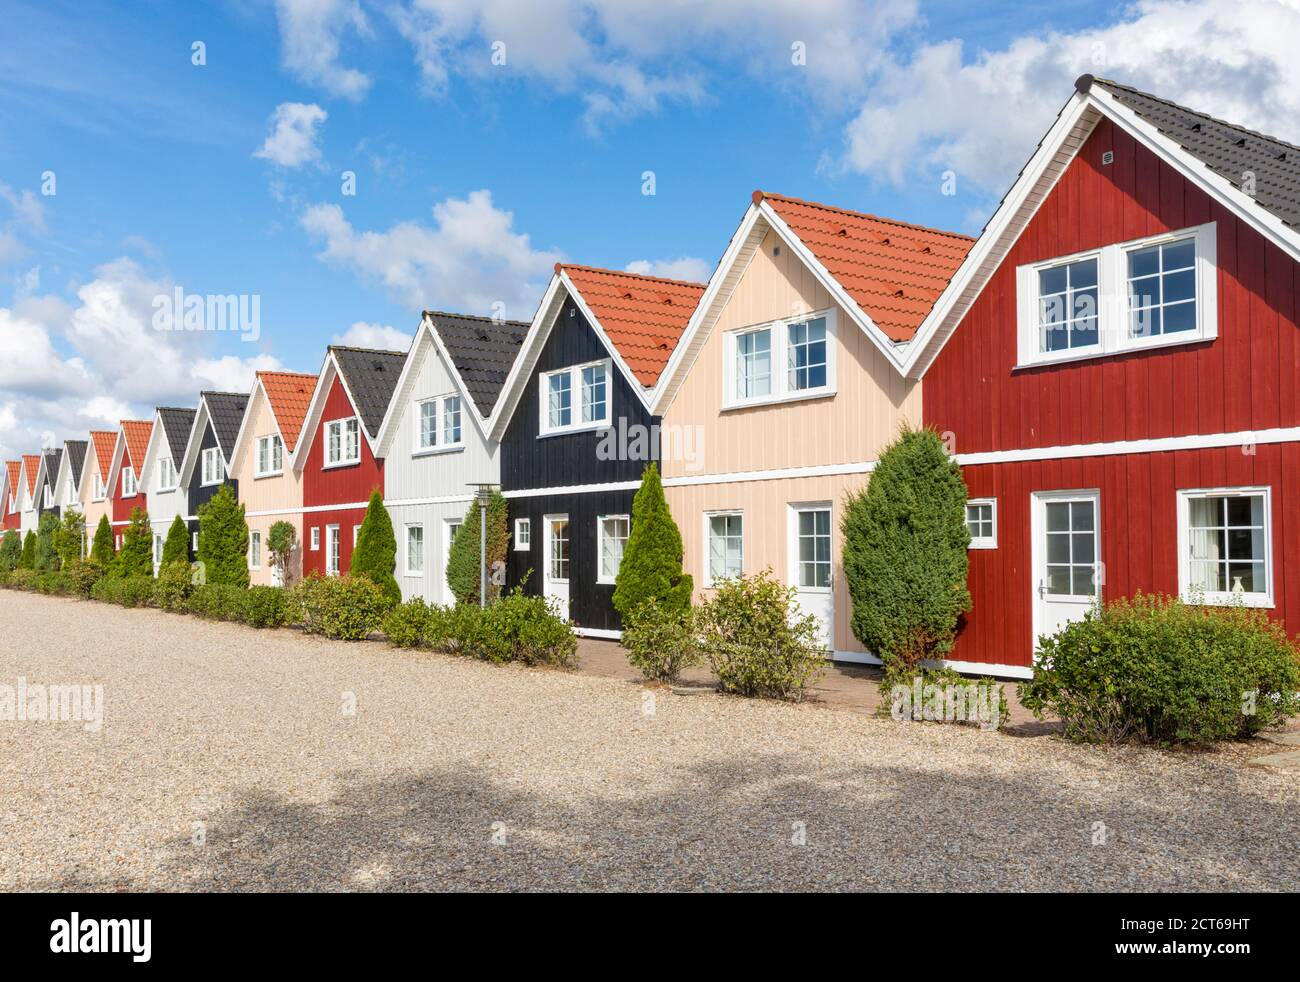 Row of almost identical wooden holiday homes in Denmark Stock Photo